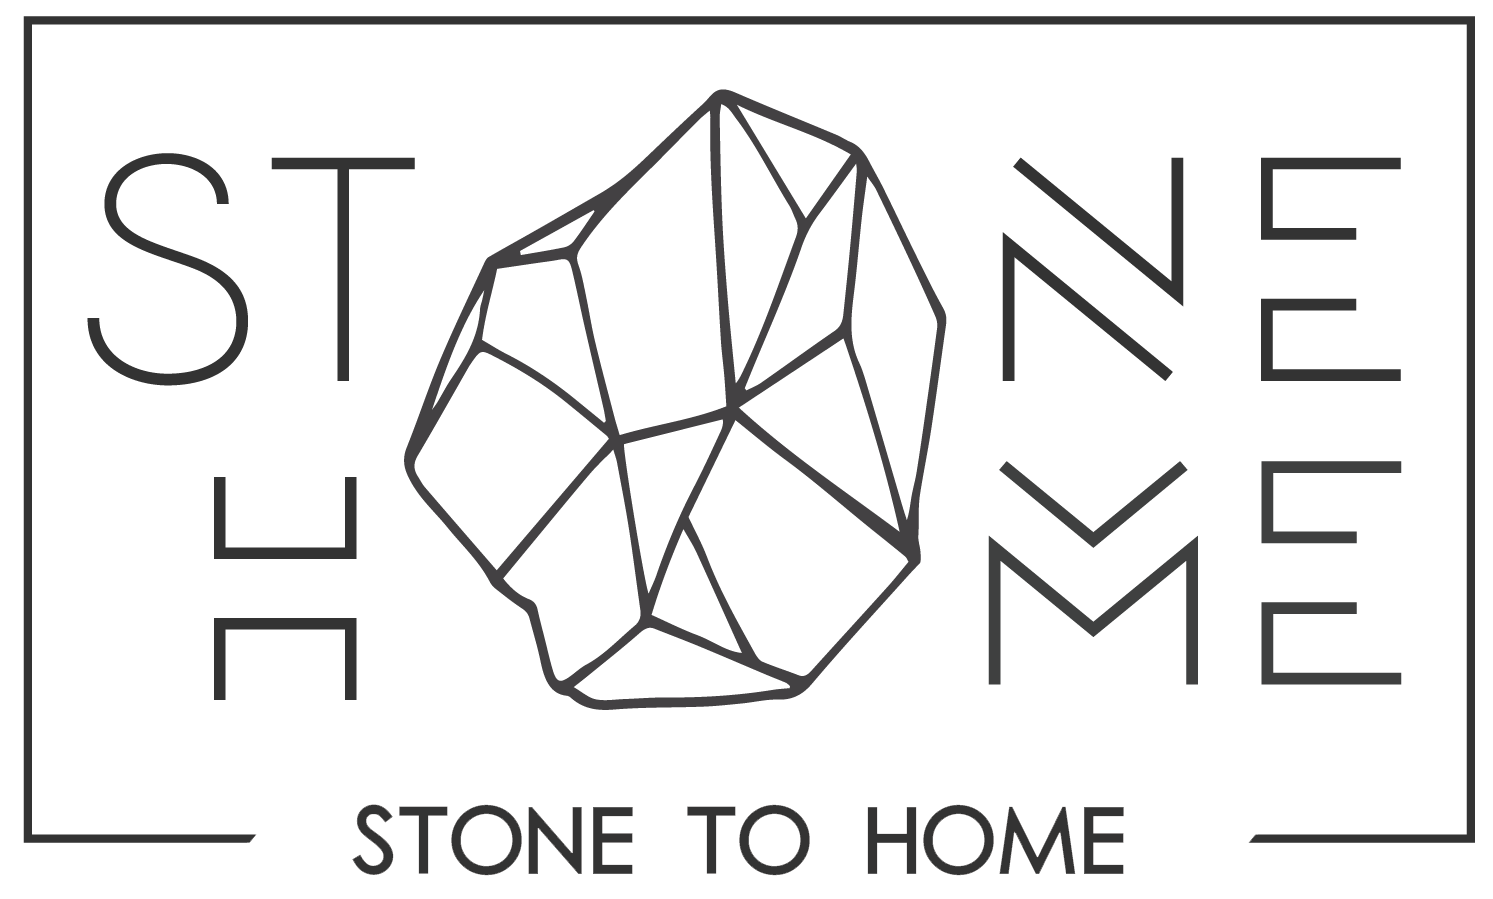 Stone to Home